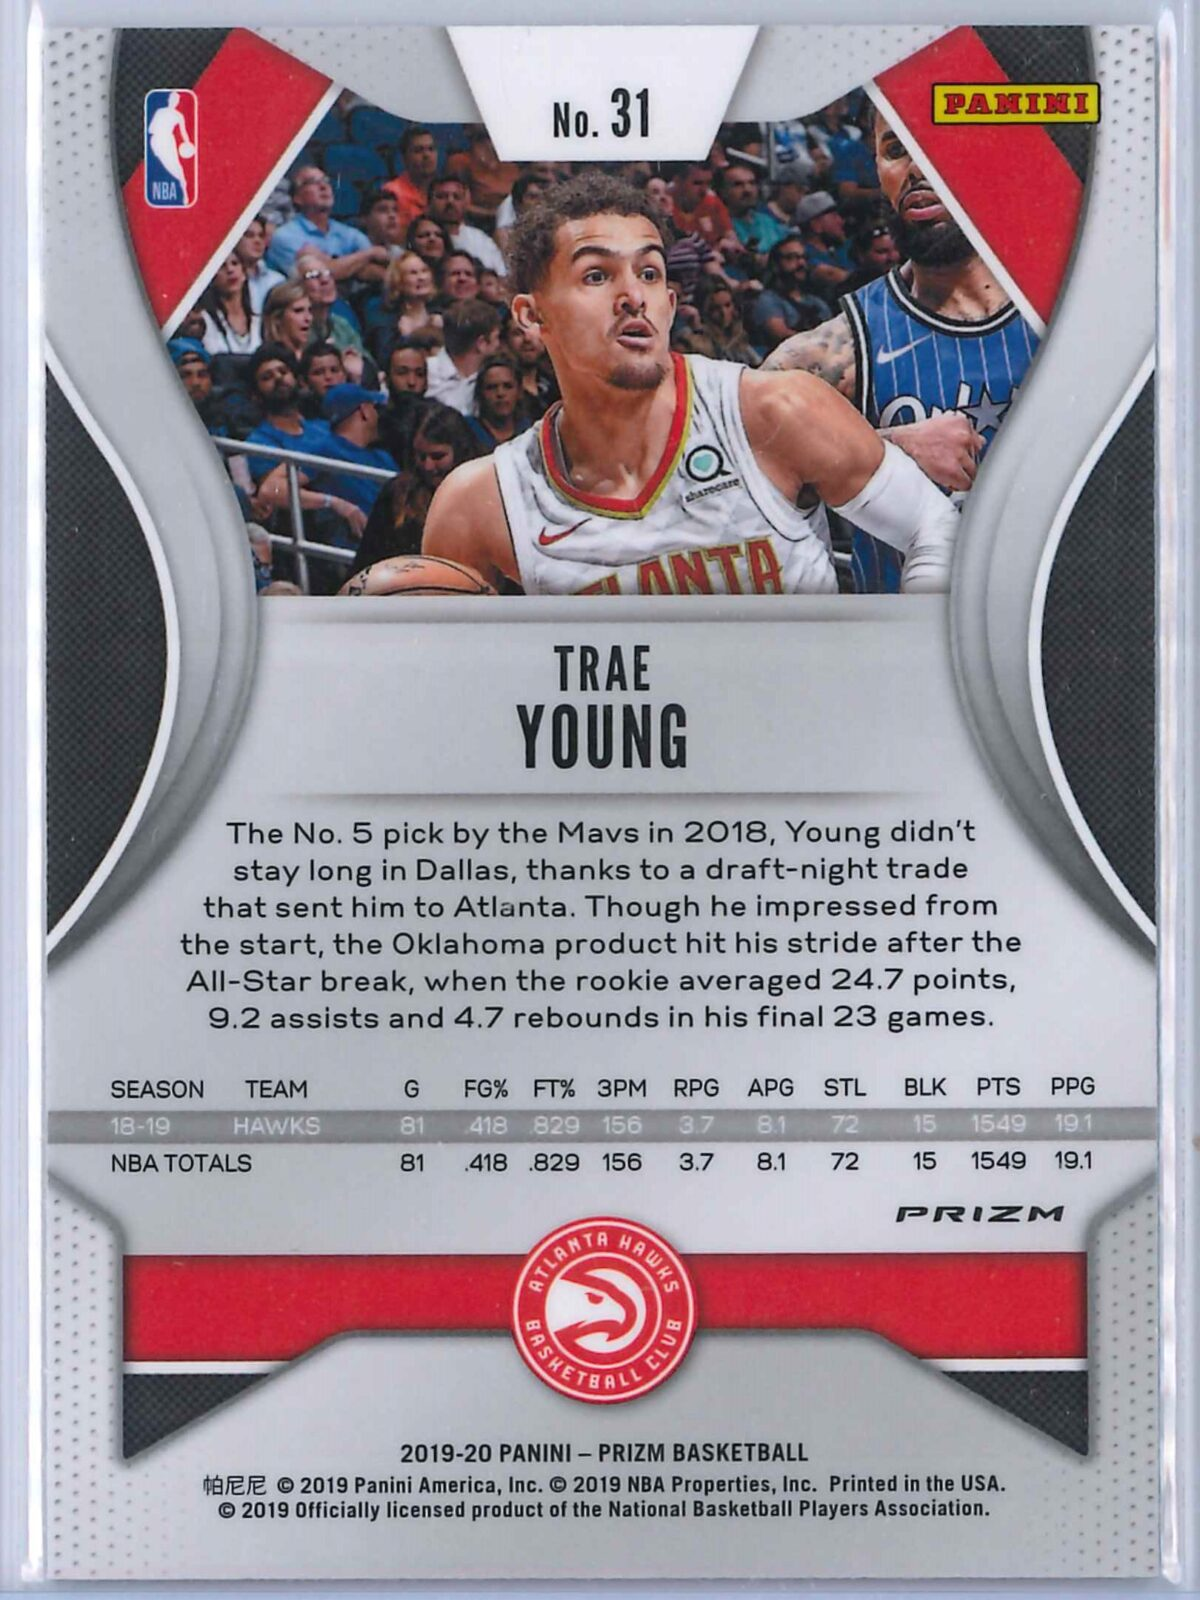 Trae Young (3) Panini Prizm 2019-20 Base 2nd Year Silver